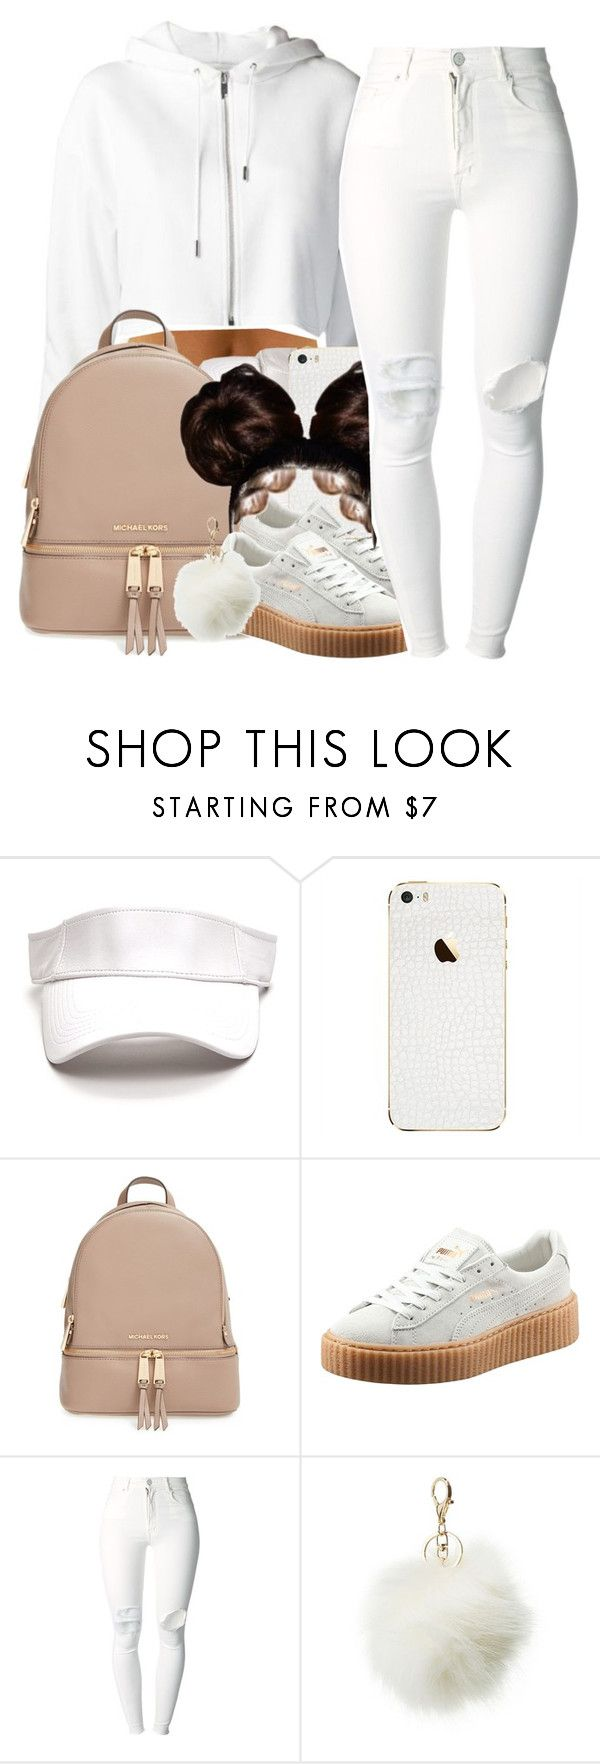 """""""all white EᖇᖇYTᕼIᑎG-Rihanna Pumas"""" by yani122 ❤ liked on Polyvore featuring MICHAEL Michael Kors, Puma, (+) PEOPLE and Charlotte Russe"""